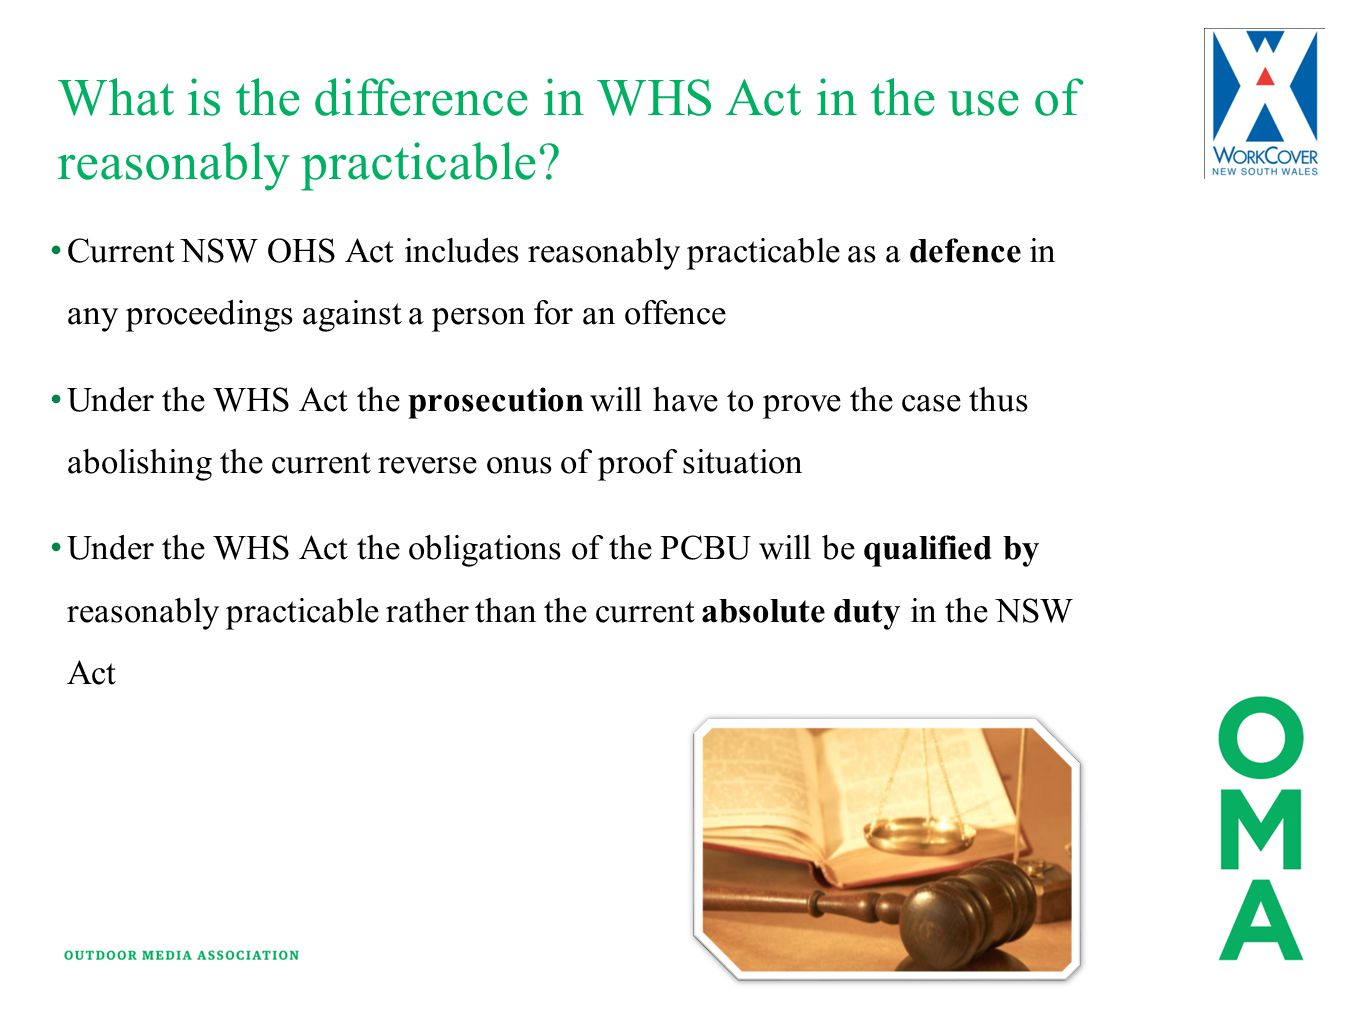 What is the difference in WHS Act in the use of reasonably practicable? Current NSW OHS Act includes reasonably practicable as a defence in any procee